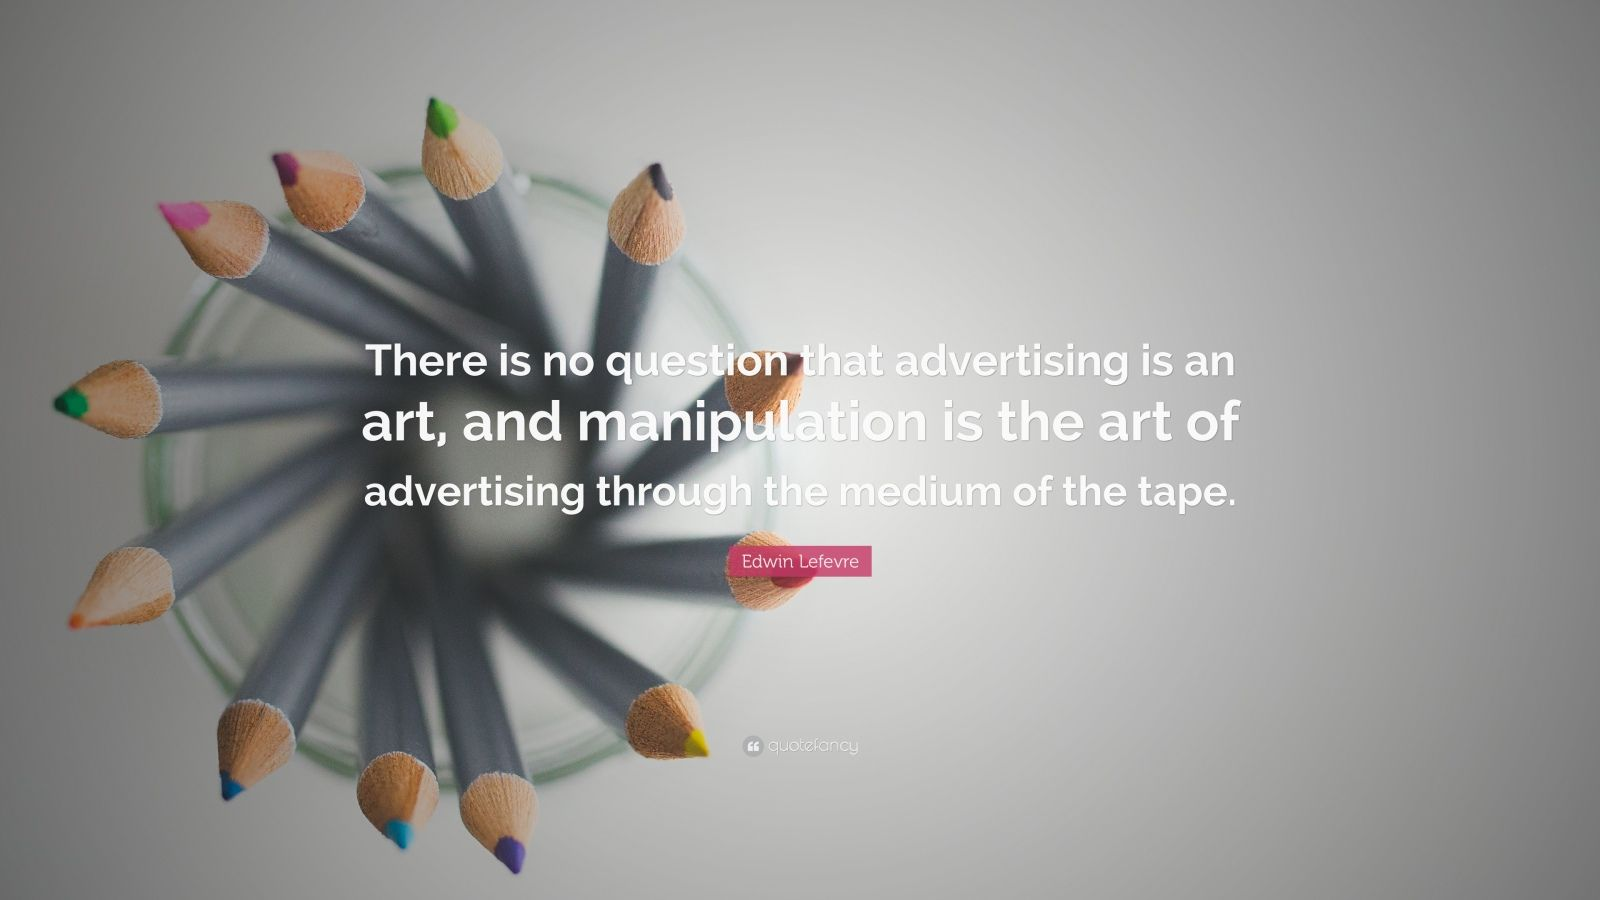 edwin lefevre quotes quotefancy edwin lefevre quote there is no question that advertising is an art and